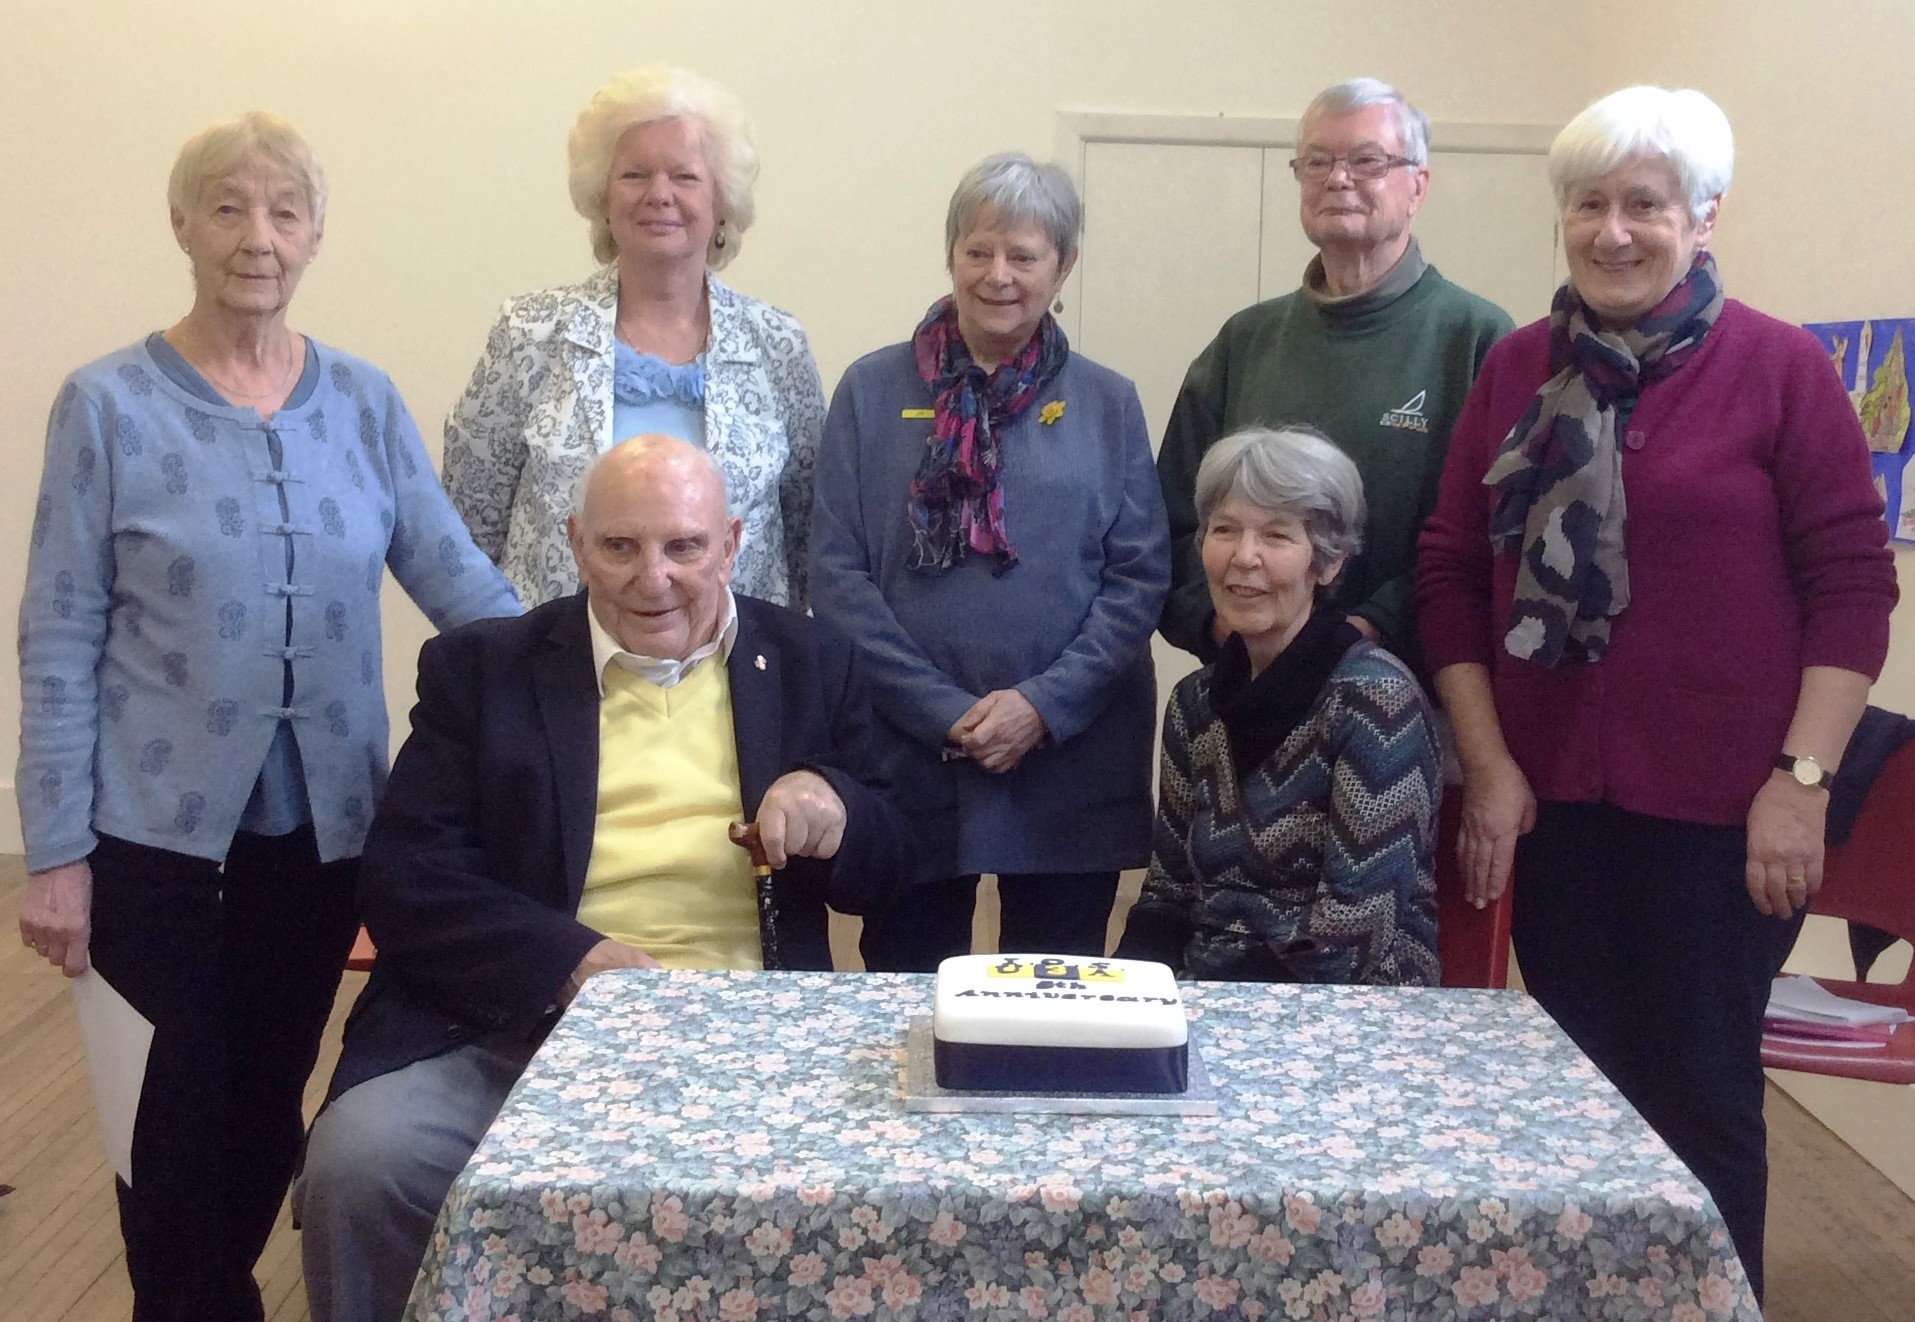 Members of the Isles of Scilly U3A organisation.